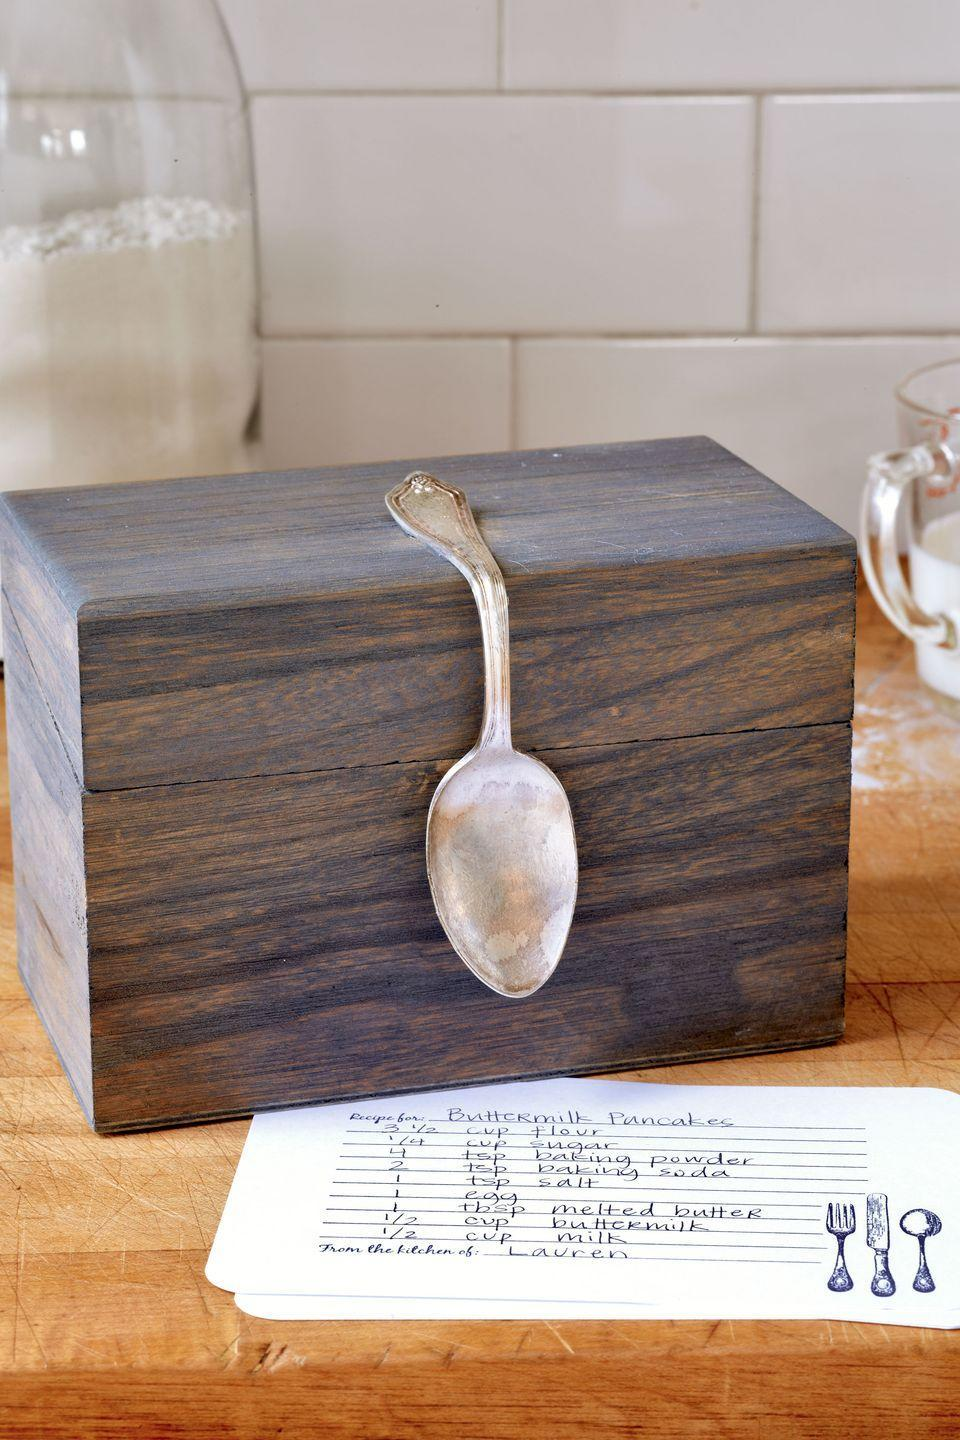 """<p>Turn a $6 box into a fabulous recipe organizer. A flea-market spoon is the secret ingredient to punching up an <a href=""""https://go.redirectingat.com?id=74968X1596630&url=http%3A%2F%2Fwww.michaels.com%2Fwooden-recipe-box-by-artminds%2F10397769.html&sref=https%3A%2F%2Fwww.countryliving.com%2Fdiy-crafts%2Ftips%2Fg645%2Fcrafty-christmas-presents-ideas%2F"""" rel=""""nofollow noopener"""" target=""""_blank"""" data-ylk=""""slk:unfinished box"""" class=""""link rapid-noclick-resp"""">unfinished box</a>. With a foam brush, stain the box, inside and out, with <a href=""""https://go.redirectingat.com?id=74968X1596630&url=https%3A%2F%2Fwww.lowes.com%2Fpd%2FMinwax-Classic-Grey-Interior-Stain-Actual-Net-Contents-32-fl-oz%2F999914517&sref=https%3A%2F%2Fwww.countryliving.com%2Fdiy-crafts%2Ftips%2Fg645%2Fcrafty-christmas-presents-ideas%2F"""" rel=""""nofollow noopener"""" target=""""_blank"""" data-ylk=""""slk:Minwax wood finish in Classic Gray"""" class=""""link rapid-noclick-resp"""">Minwax wood finish in Classic Gray</a><em>. </em>Let dry overnight.Using your hands, bend a teaspoon at a 90-degree angle. Lightly sand the widest point of the handle's back side.Apply <a href=""""https://www.amazon.com/Beacon-Glass-Premium-Permanent-2-Ounce/dp/B00083QL5M/?tag=syn-yahoo-20&ascsubtag=%5Bartid%7C10050.g.645%5Bsrc%7Cyahoo-us"""" rel=""""nofollow noopener"""" target=""""_blank"""" data-ylk=""""slk:Glass, Metal & More glue"""" class=""""link rapid-noclick-resp"""">Glass, Metal & More glue</a> along the sanded area<em>.</em> Center the spoon atop the box, press and hold for one minute, then let set overnight. For extra flourish, include a set of <a href=""""https://go.redirectingat.com?id=74968X1596630&url=https%3A%2F%2Fwww.etsy.com%2Flisting%2F263334005%2Frecipe-cards-set-of-15-30-or-50&sref=https%3A%2F%2Fwww.countryliving.com%2Fdiy-crafts%2Ftips%2Fg645%2Fcrafty-christmas-presents-ideas%2F"""" rel=""""nofollow noopener"""" target=""""_blank"""" data-ylk=""""slk:recipe cards"""" class=""""link rapid-noclick-resp"""">recipe cards</a>. </p><p><strong><a class=""""link rapid-noclick-resp"""" href=""""https://go."""